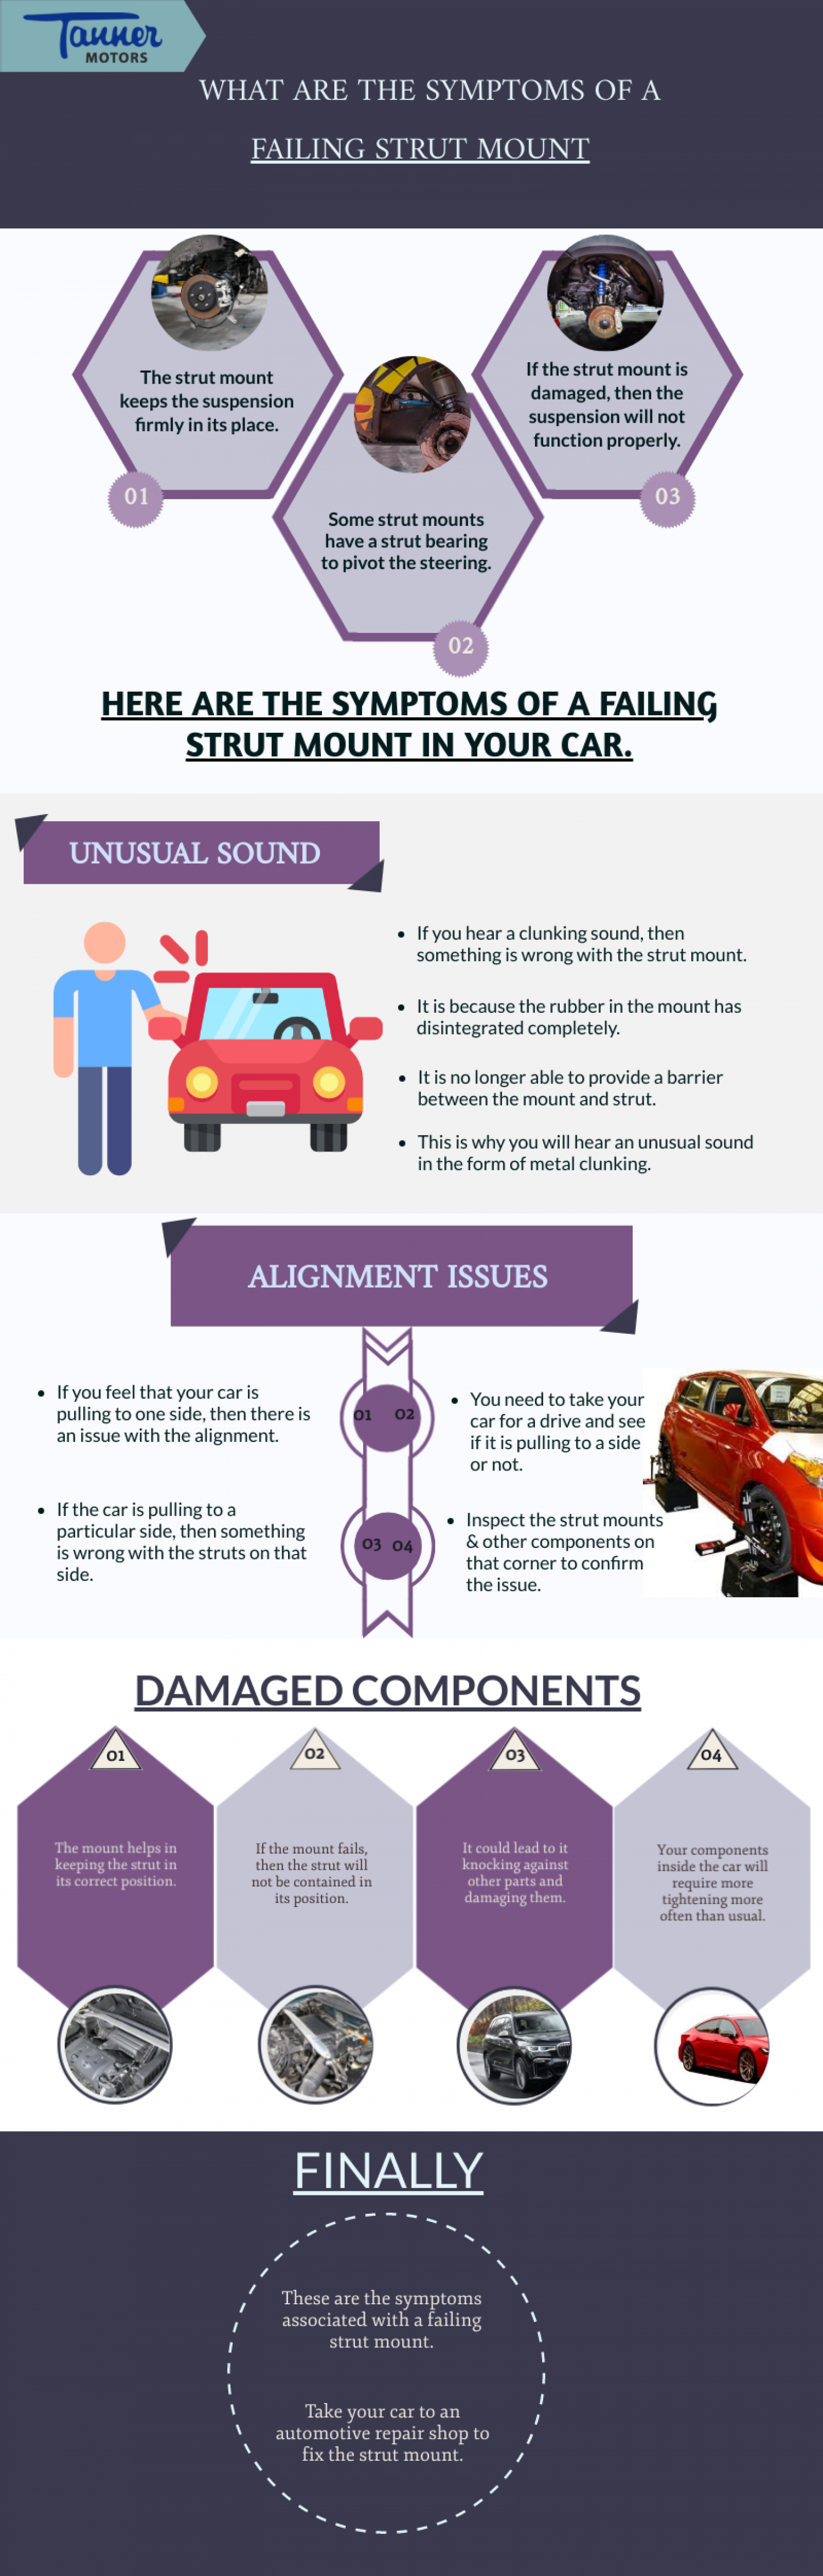 What are the Symptoms of a Failing Strut Mount? Infographic